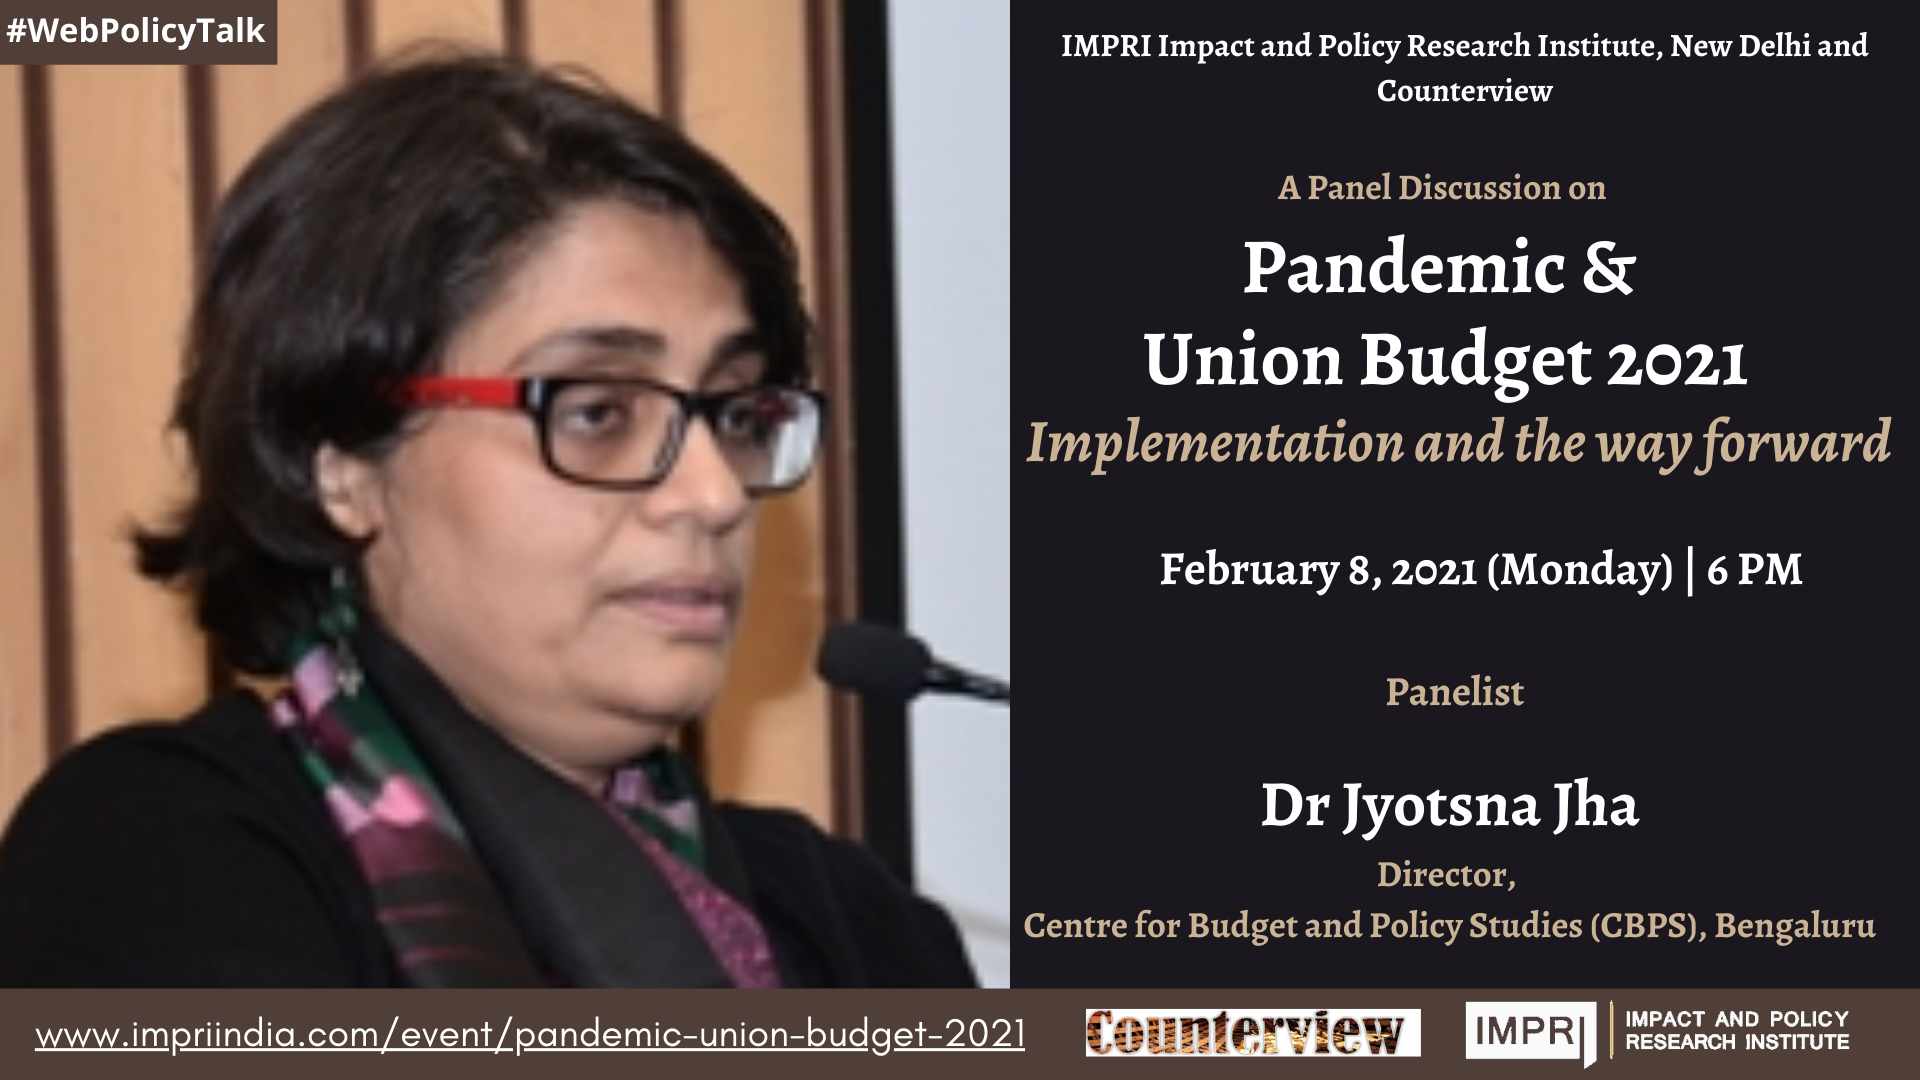 Pandemic & Union Budget 2021: Implementation and the way forward